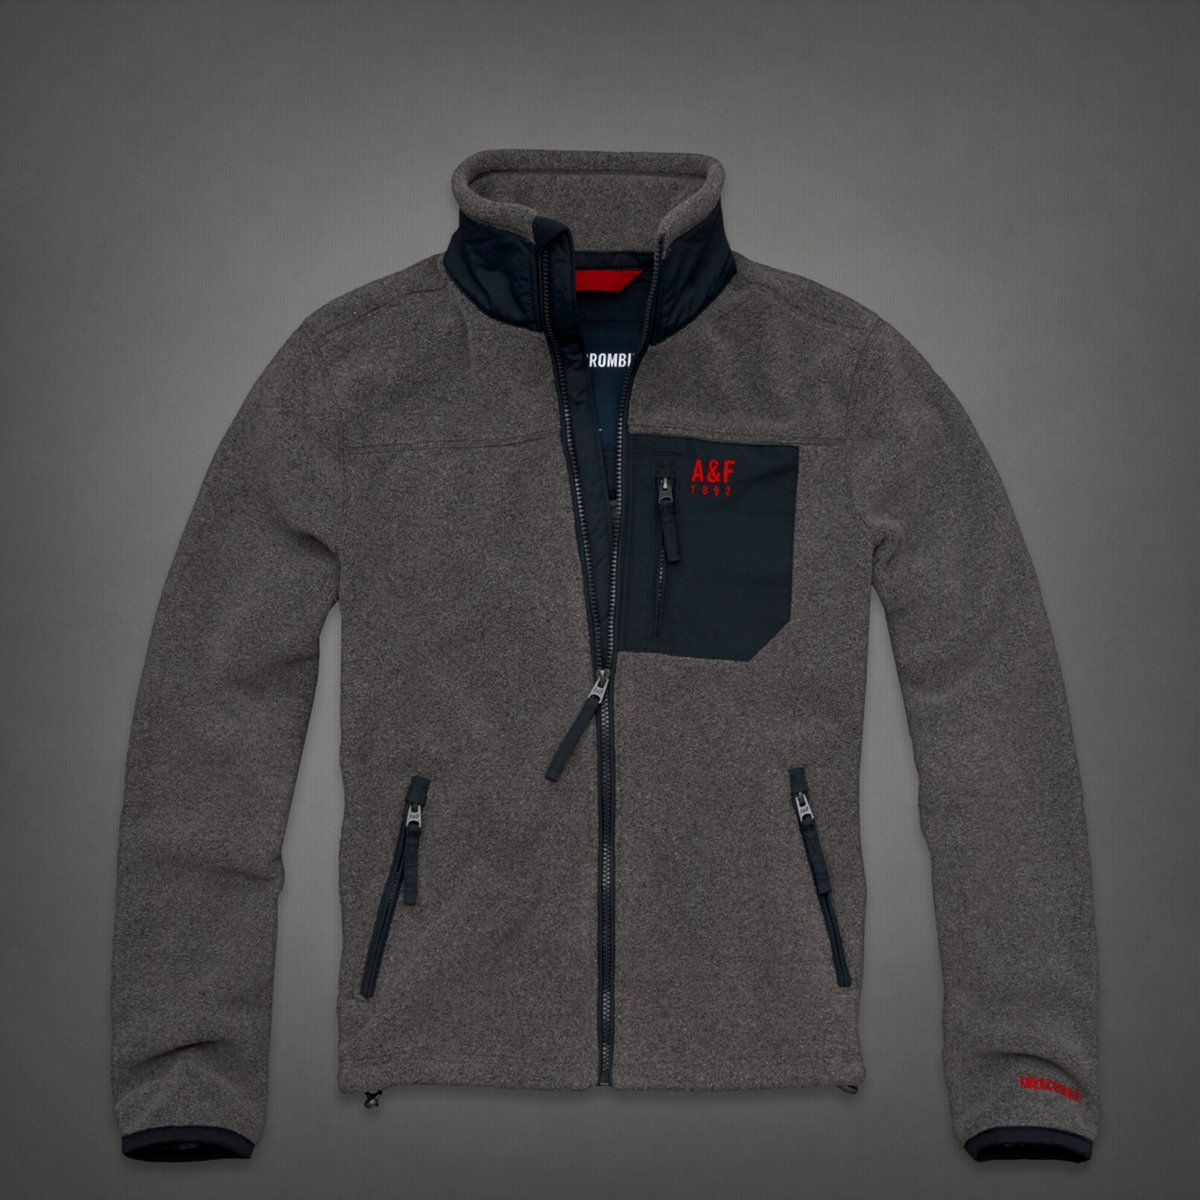 351c63b9ff Mountain Fleece Jacket by Abercrombie & Fitch, $140 | / clothes ...